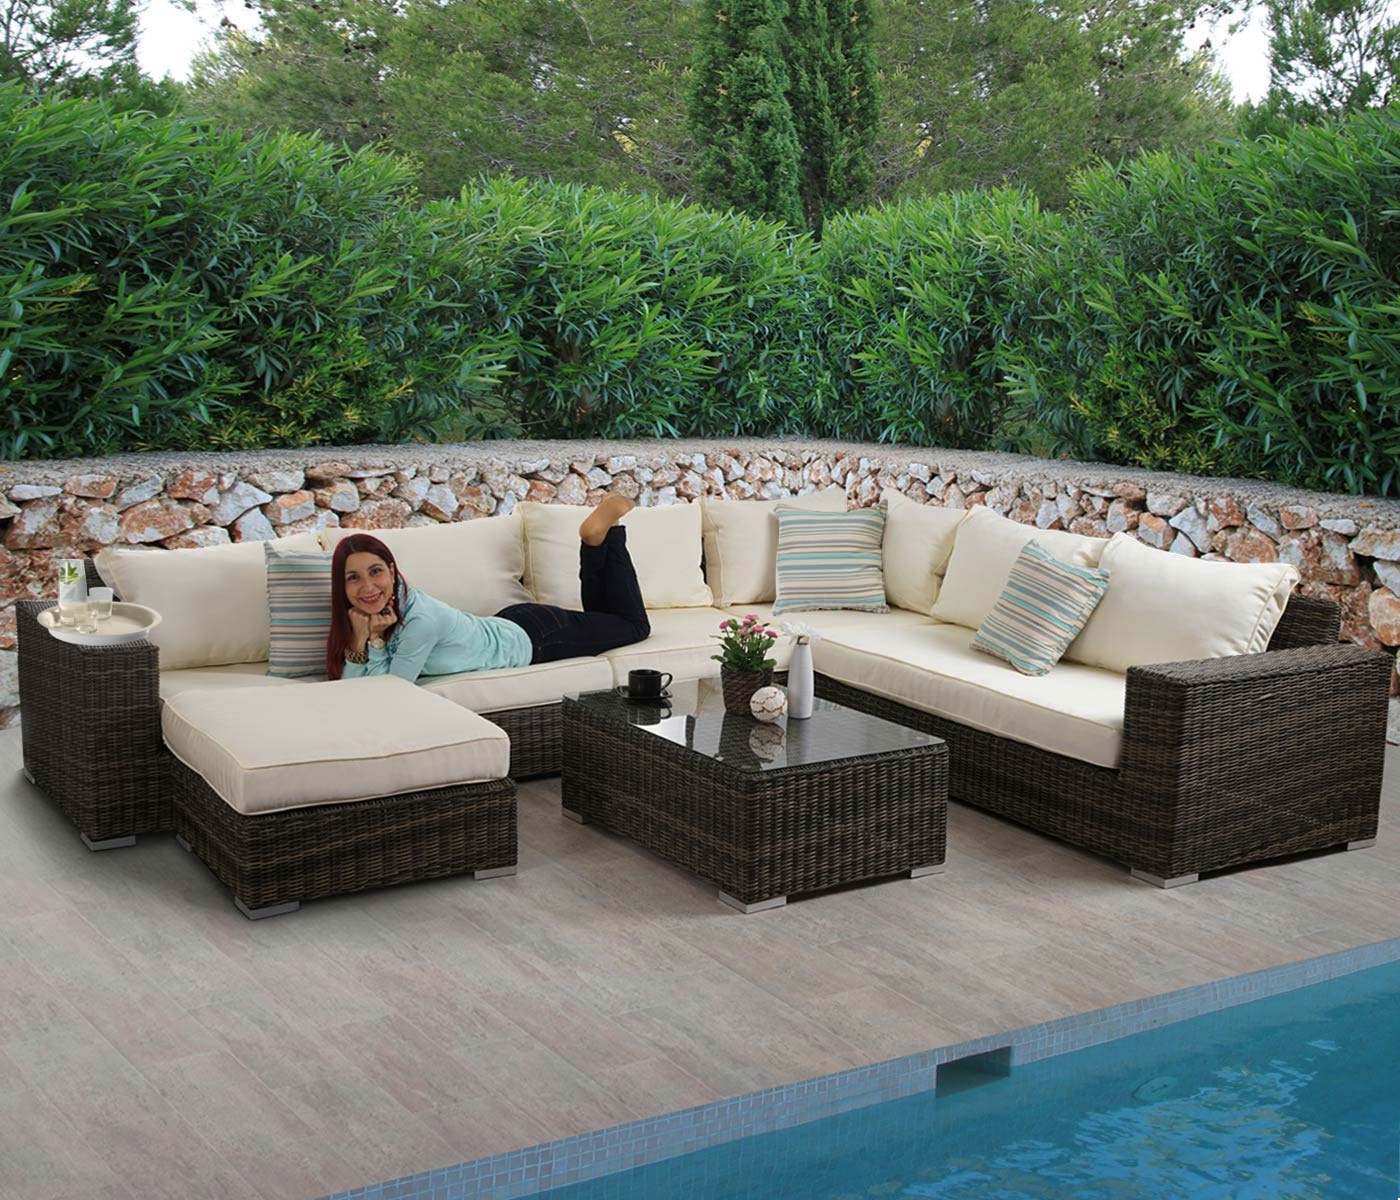 Luxus poly rattan sofa garnitur melilla lounge set for Lounge set rattan gunstig